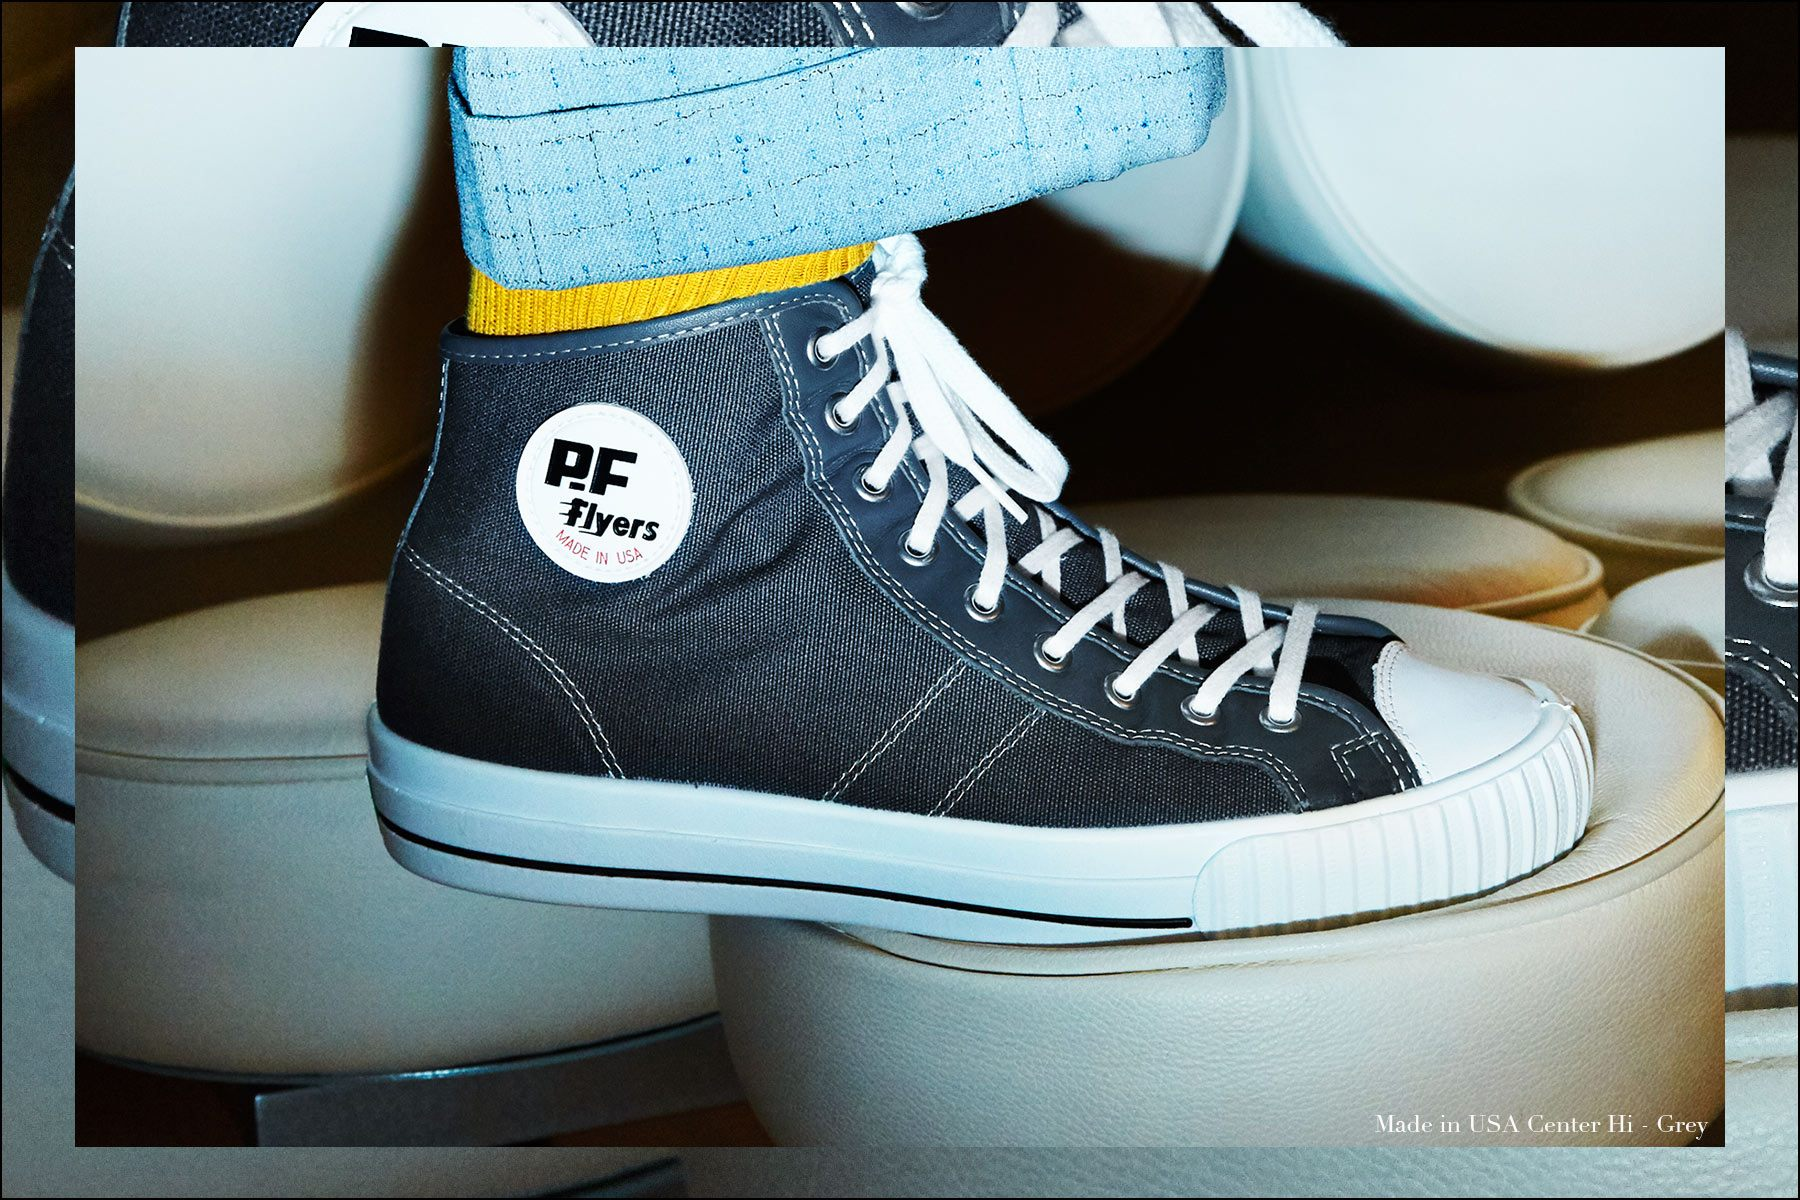 Close-up shot of Made in USA sneaker from PF Flyers, photographed by Alexander Thompson for Ponyboy magazine NY.